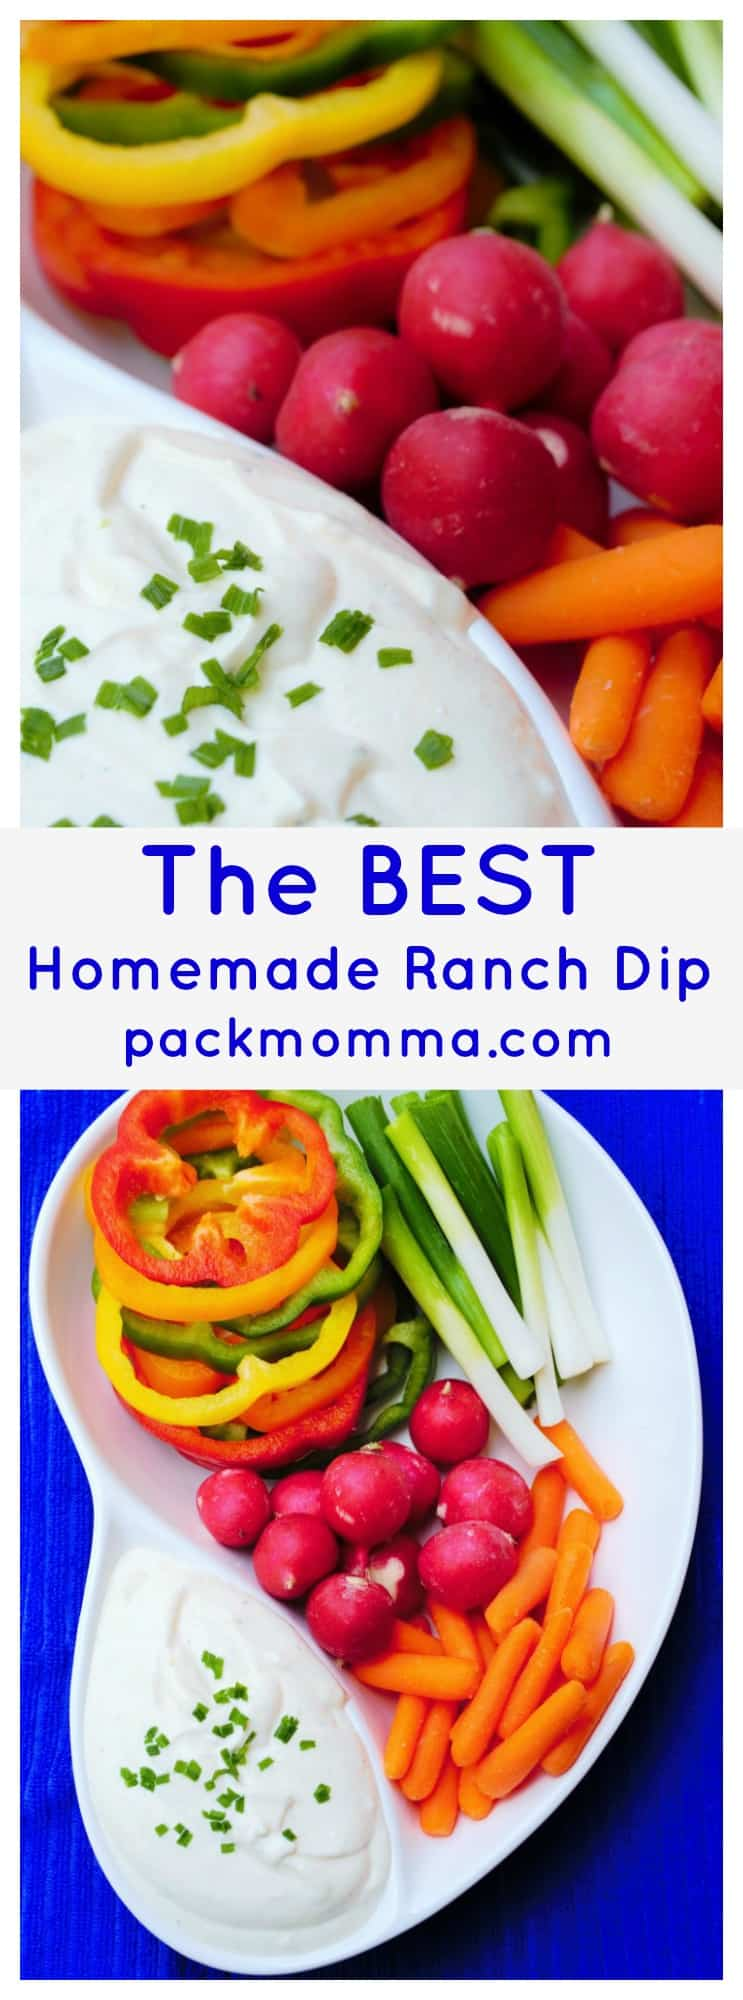 Homemade Ranch Dip | Homemade Ranch Dip is quick and easy and THIS ranch dip is better than any you will buy in the store. You will be amazed at how good this really is! | Pack Momma | https://www.packmomma.com